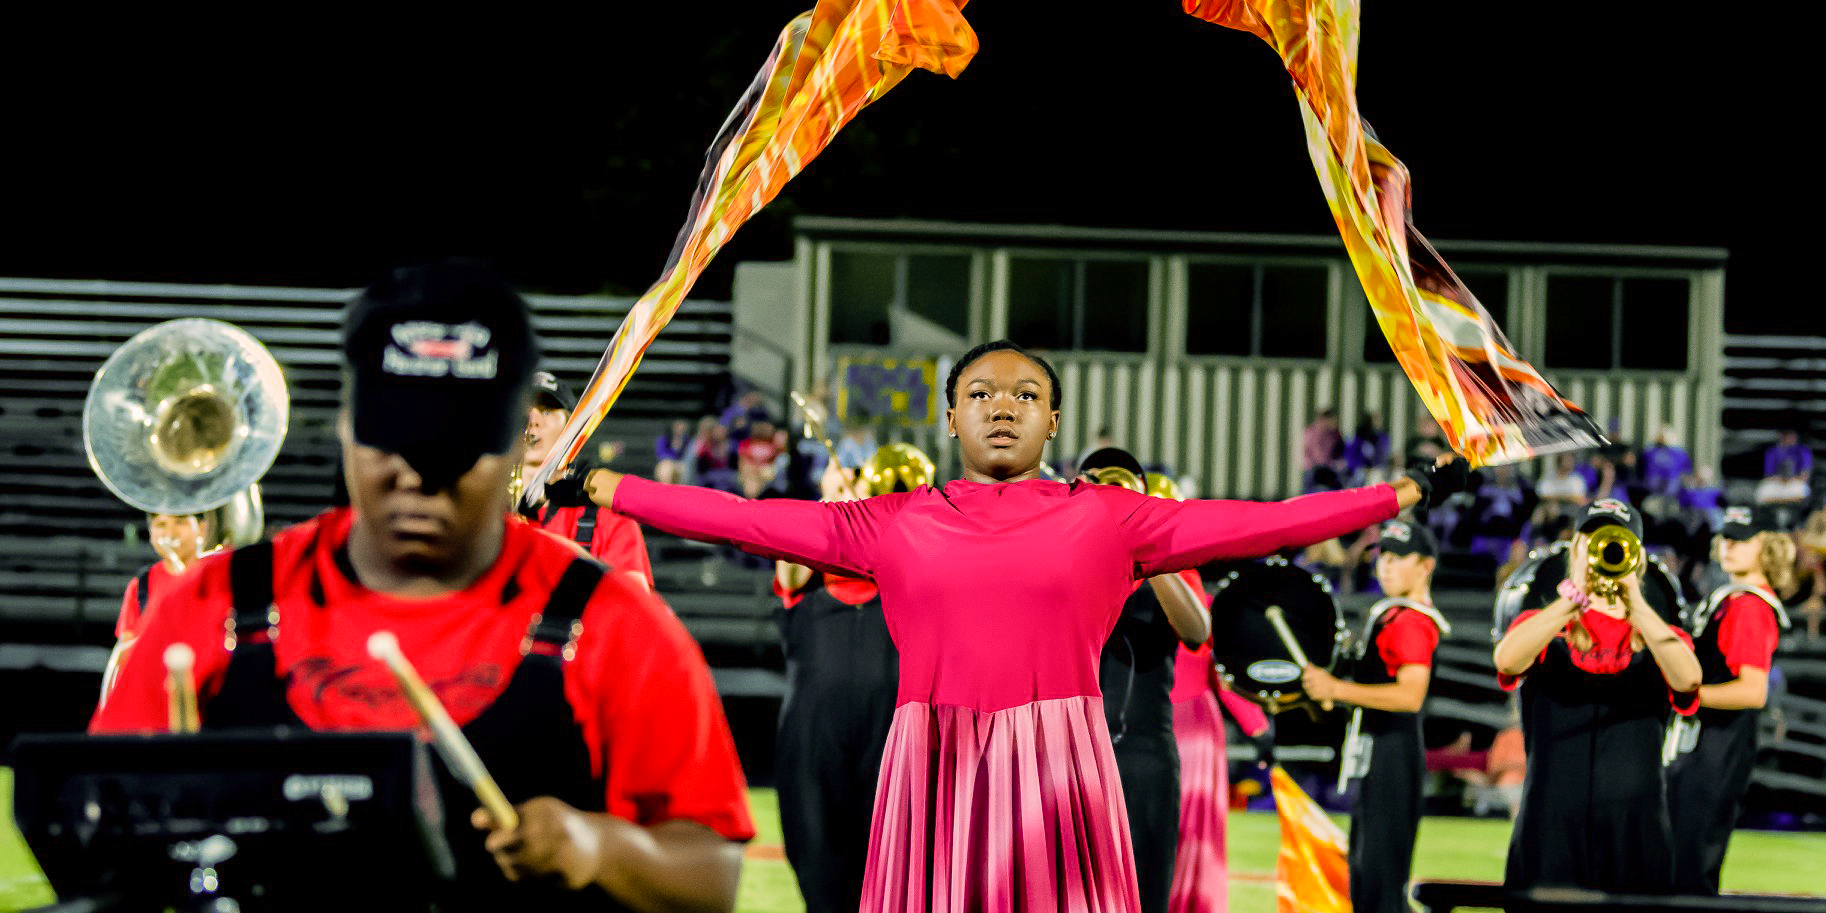 MHS Band Colorguard